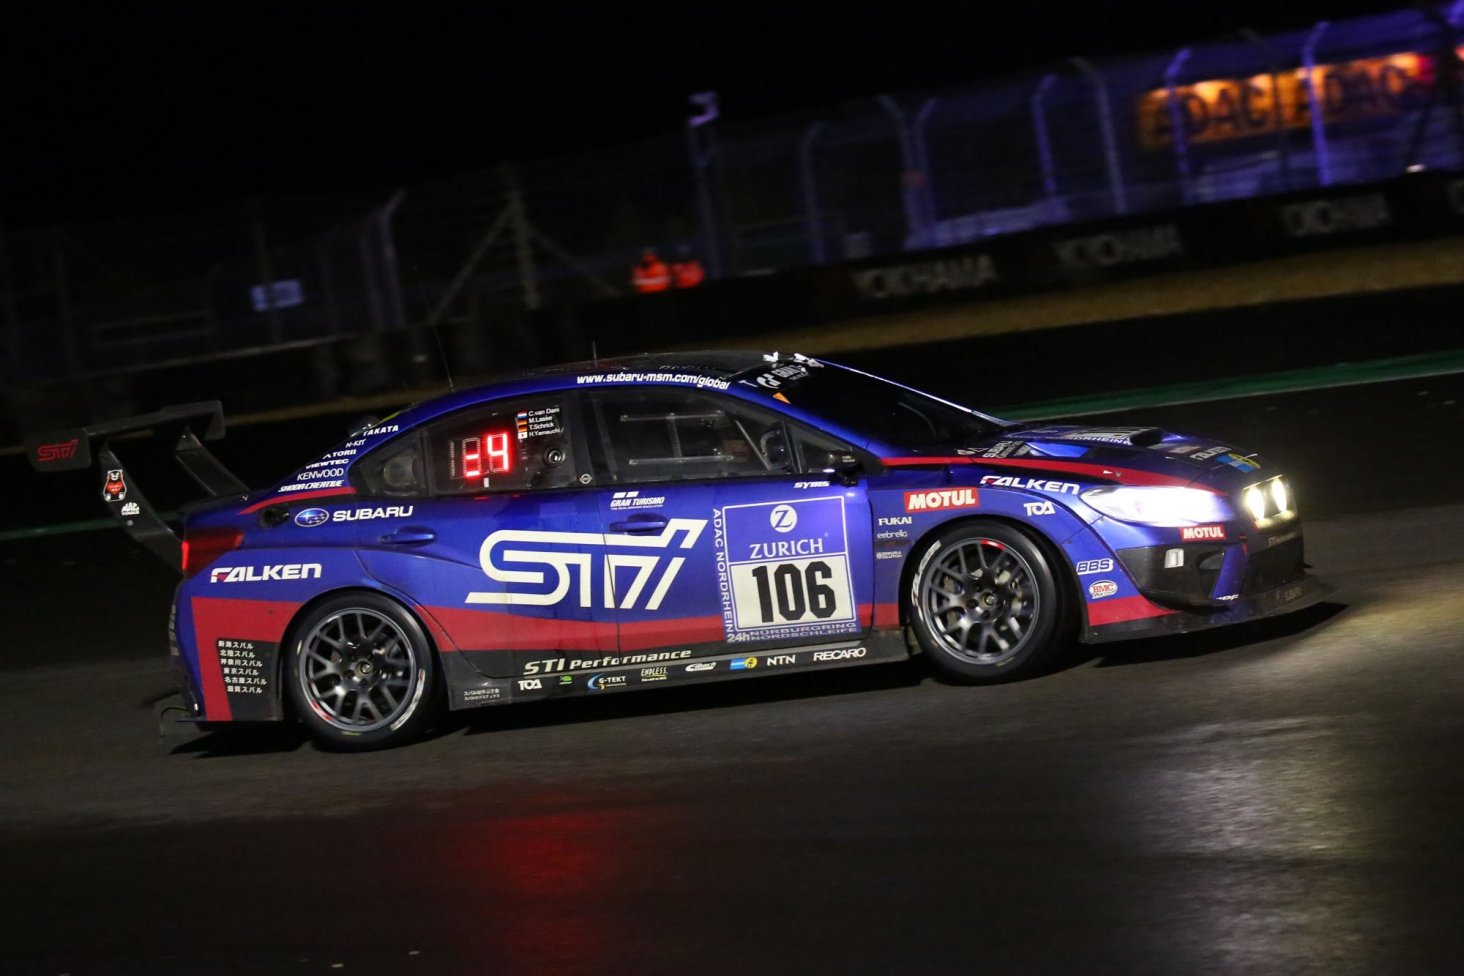 Subaru Tecnica International's (STi) All-Wheel Drive Subaru WRX STi NBR Challenge 2016 racing car, which is based on the mass production WRX STi, took the SP3T class win in the 2016 Nürburgring 24-Hour Race, held in Germany from May 26 to 29.